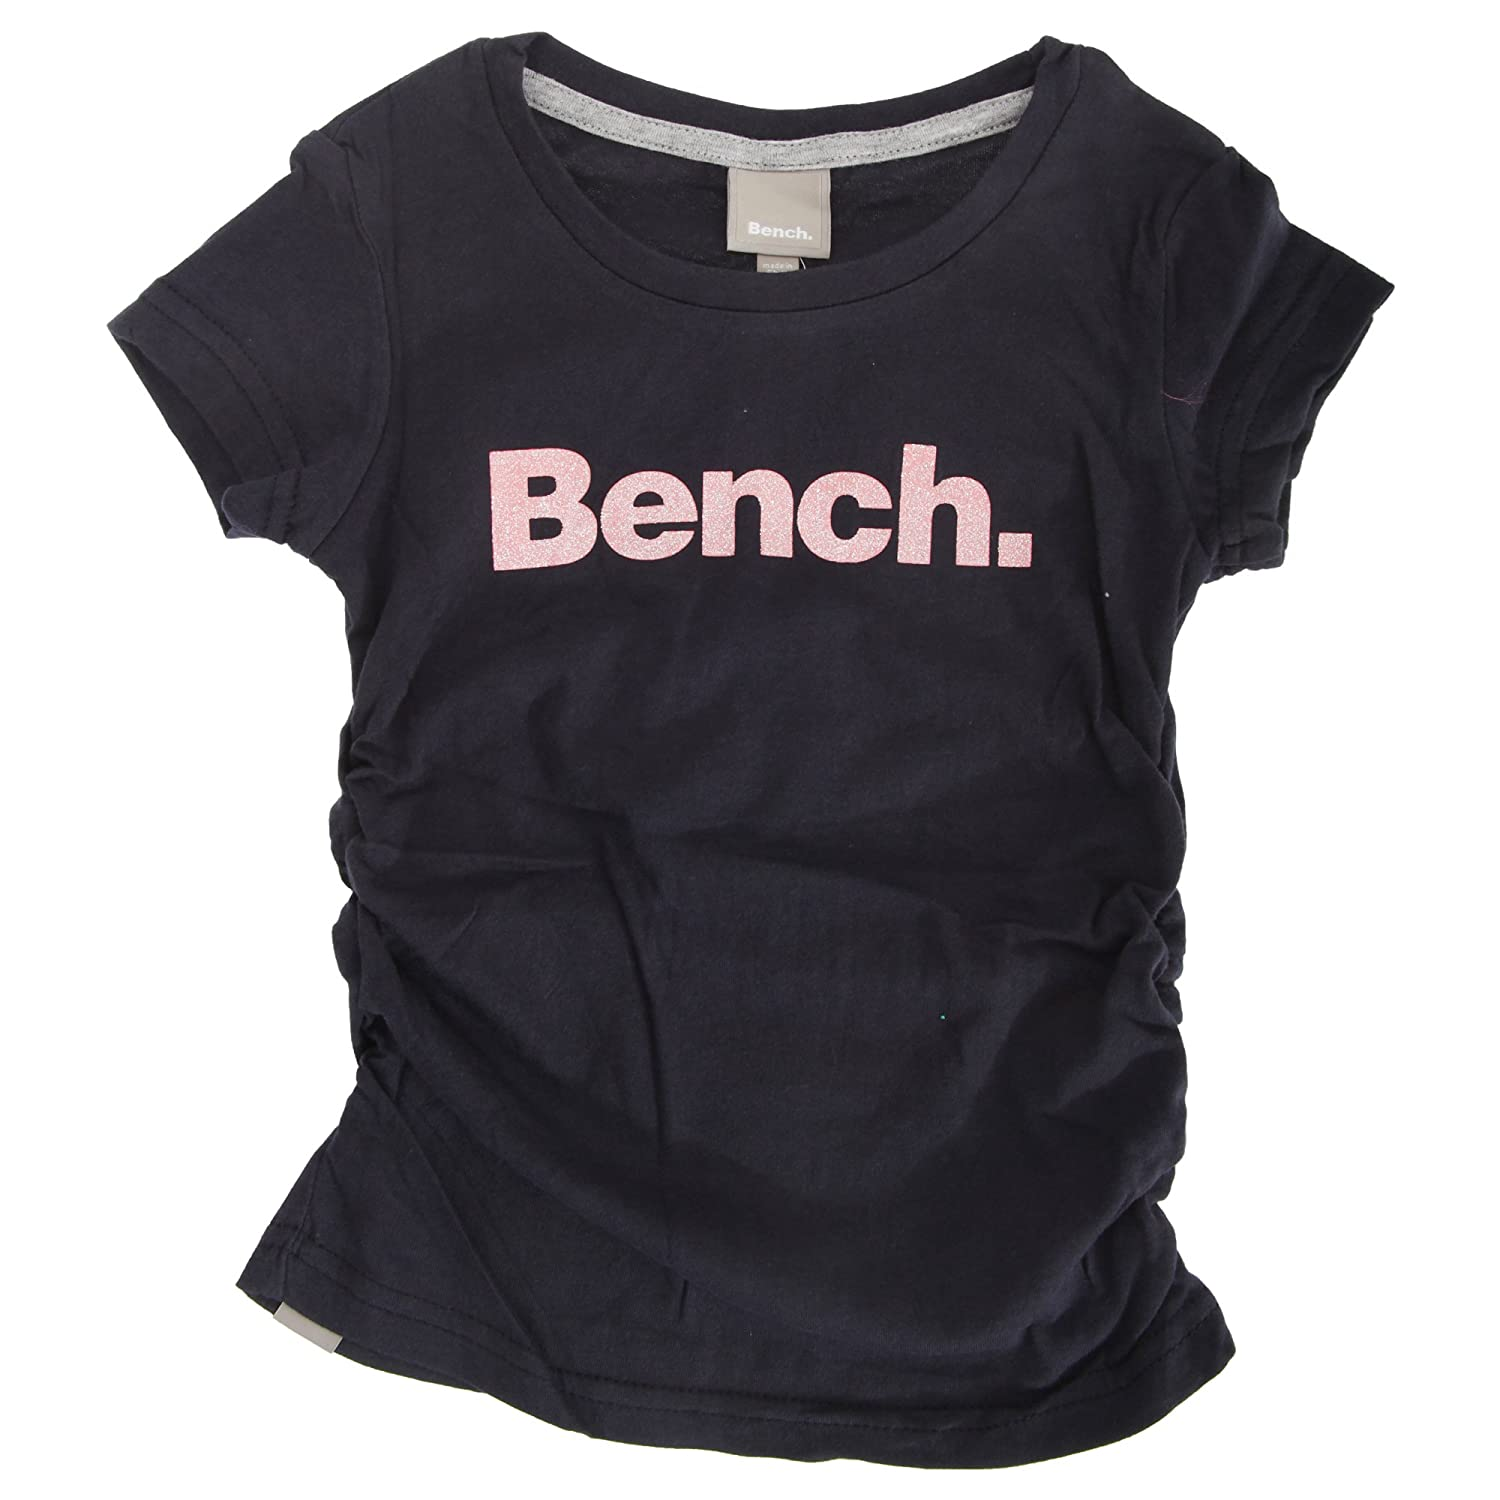 Bench Childrens Girls New Deckstar Short Sleeve Crew Neck T-Shirt